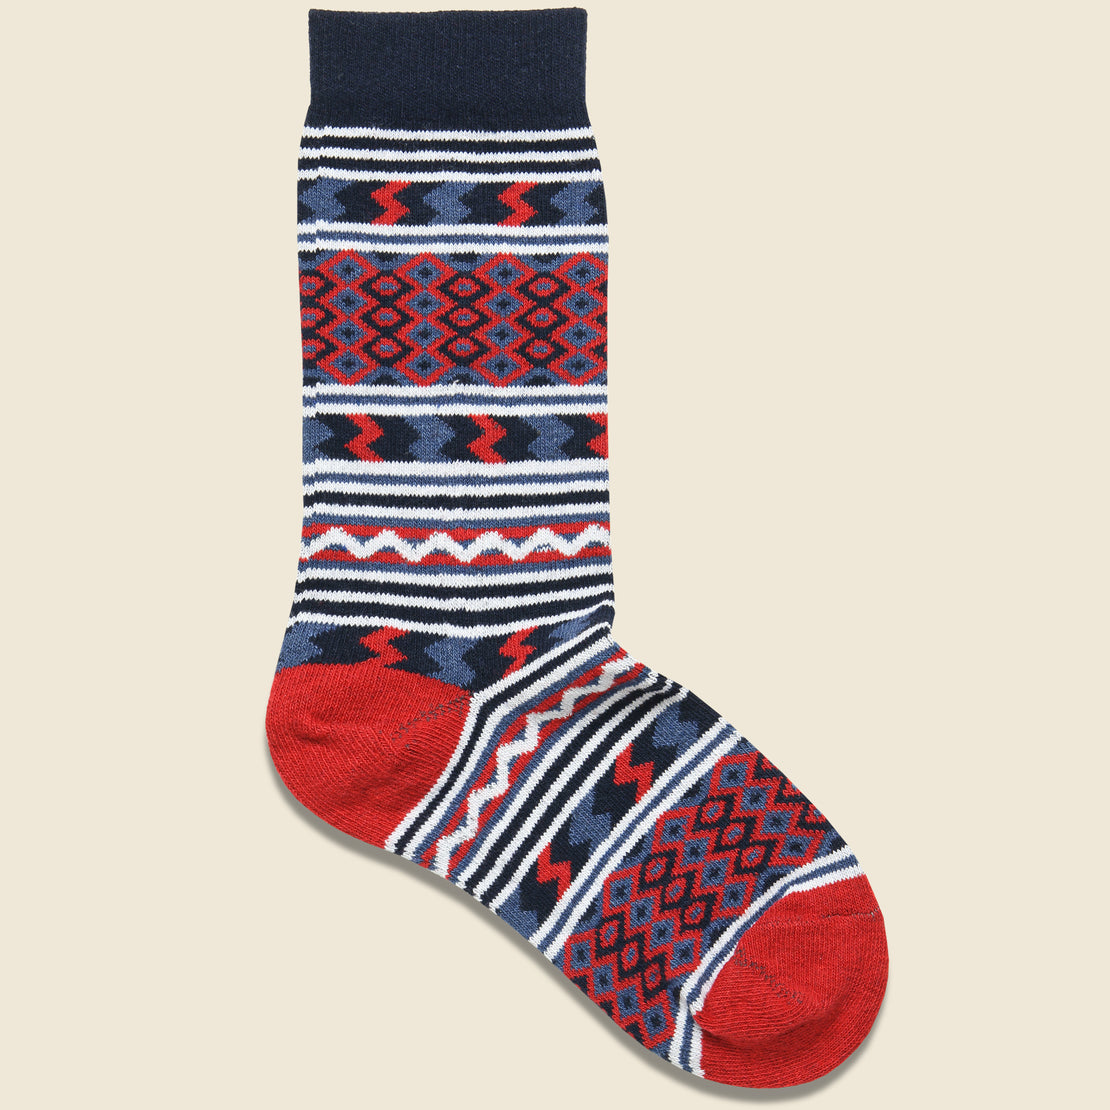 American Trench Rio Grande Serape Sock - Navy/Red